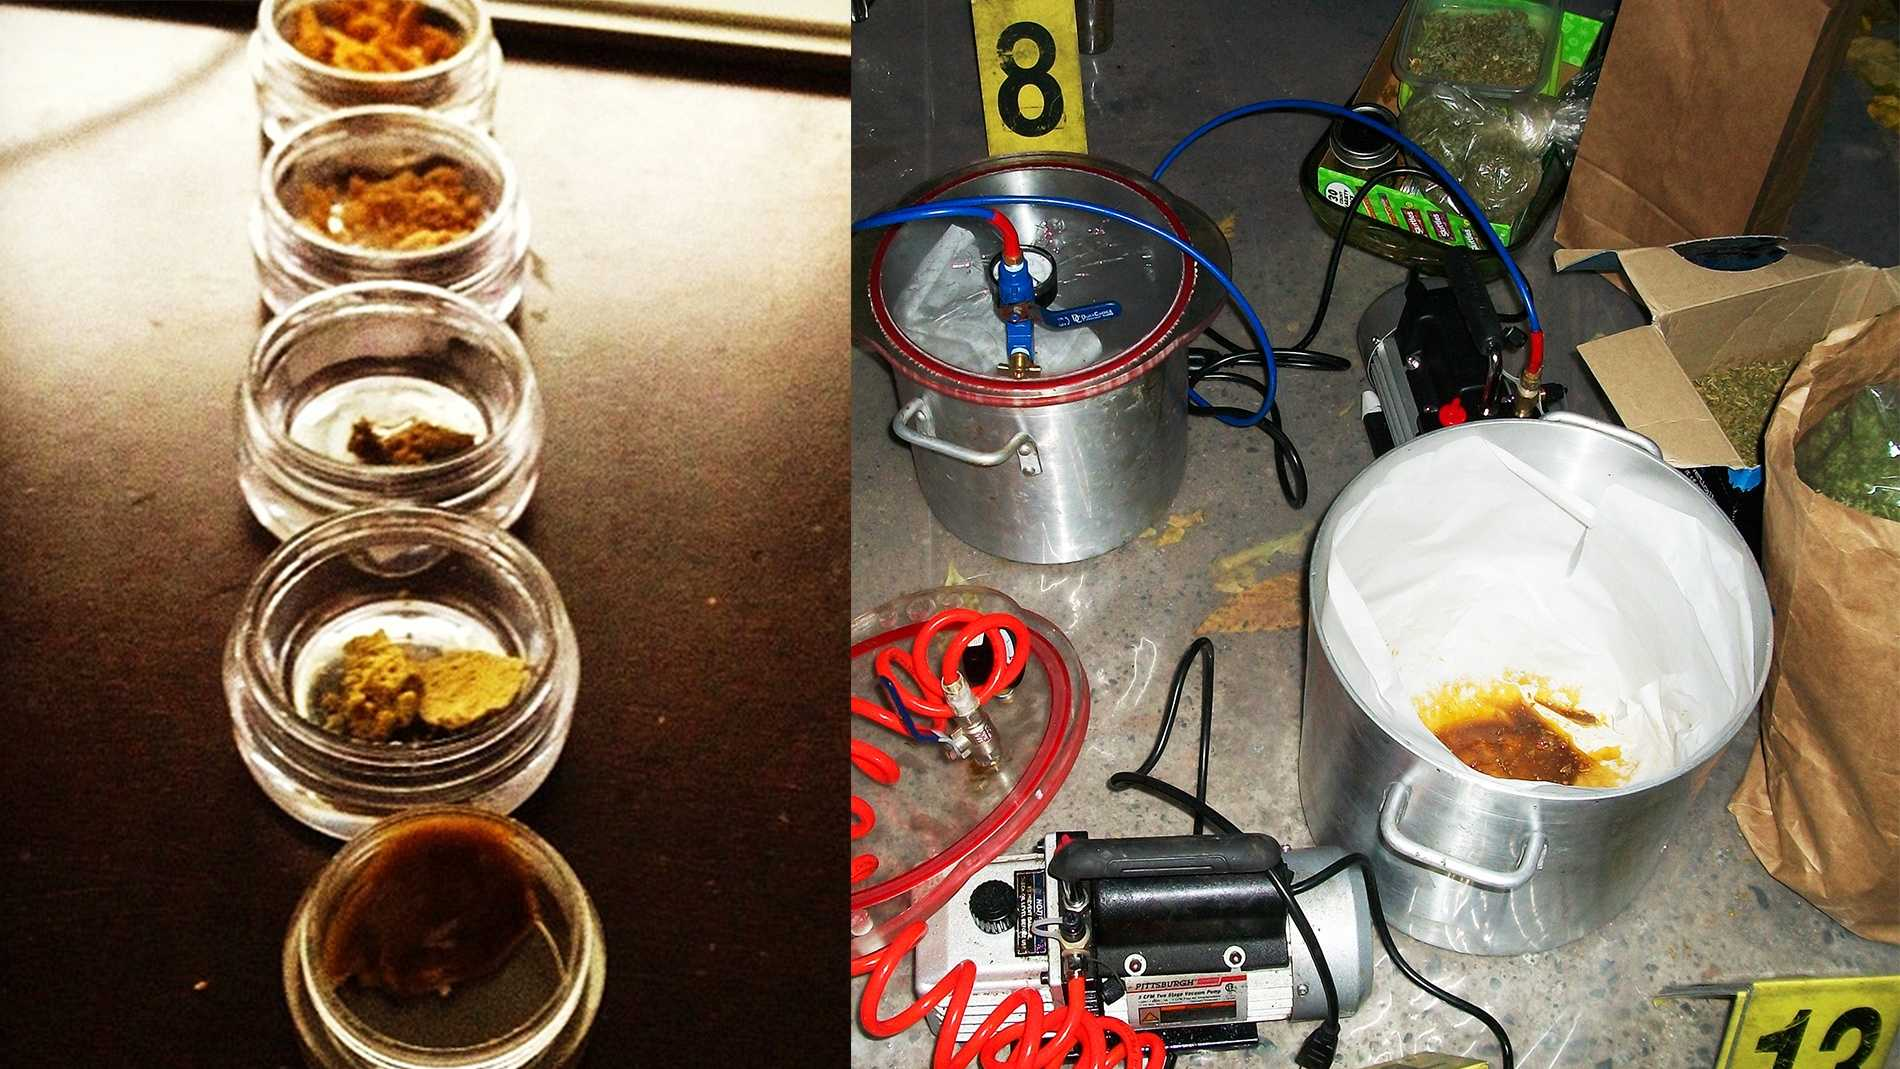 Honey oil, left. A secret honey oil lab discovered in a Gilroy house where an 11-month-old baby played nearby, right.